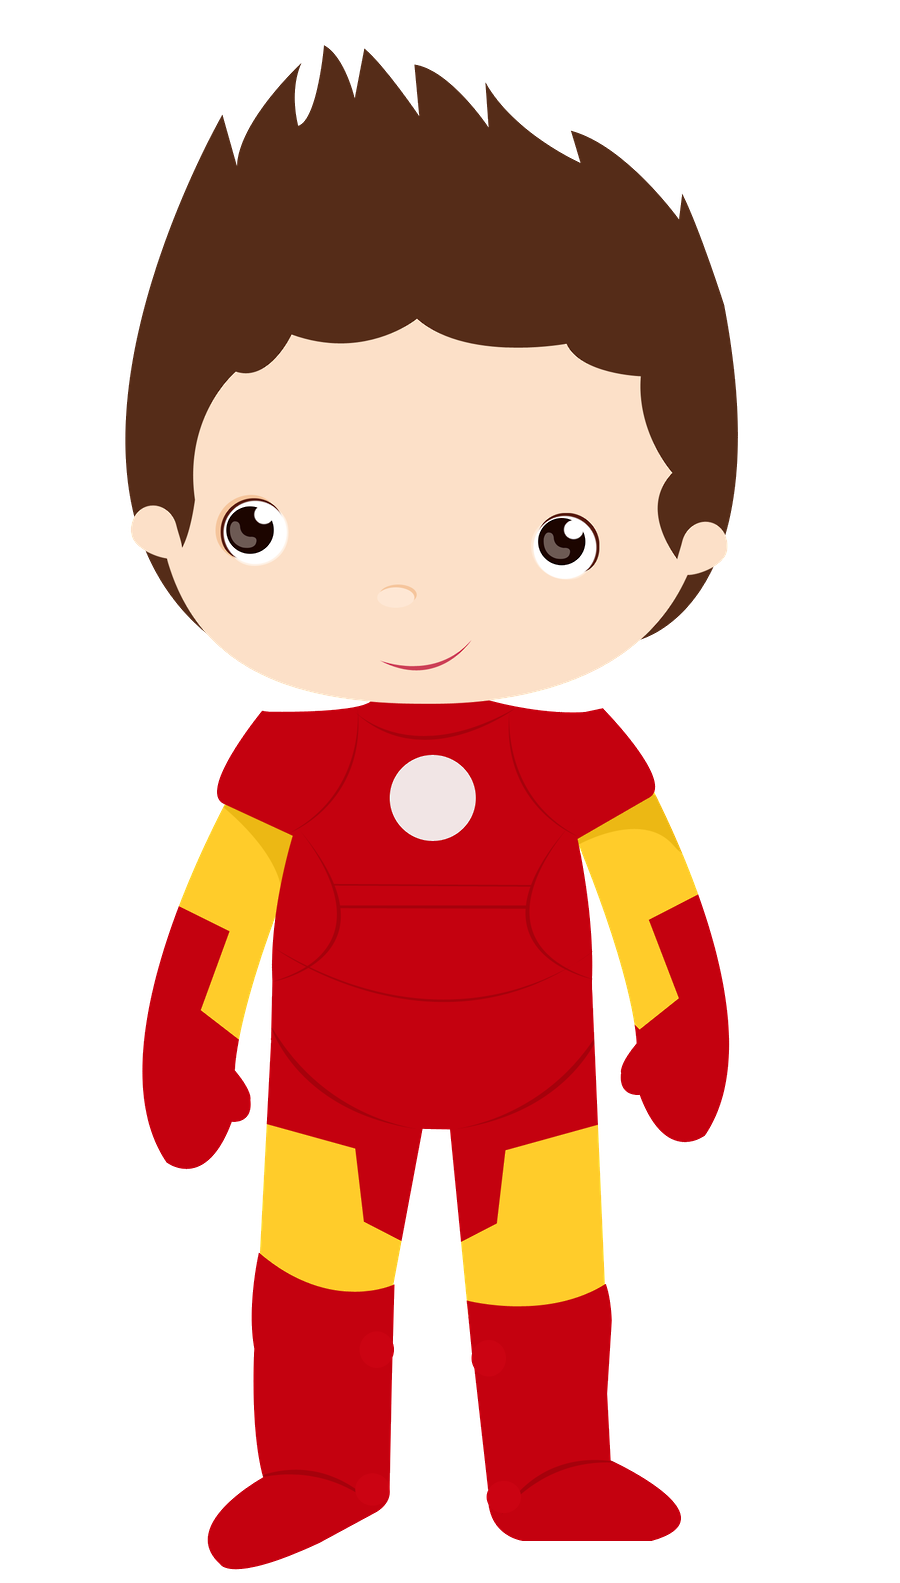 Phone clipart child. Avengers pretty png avengersclipartavengersprettyclipartpng